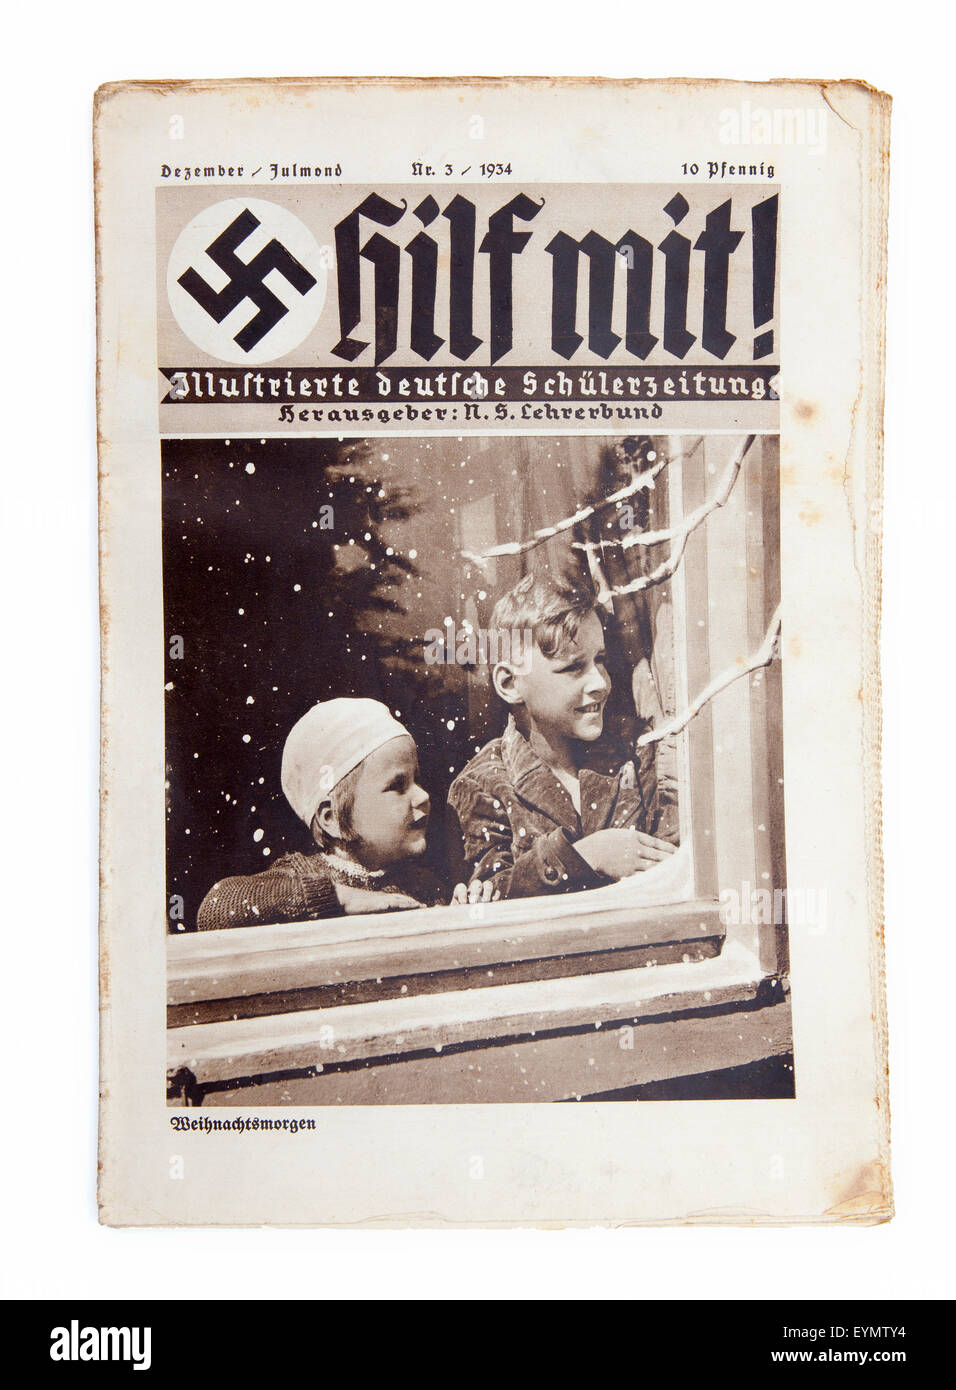 "Nazi-German Propaganda for children, pupil magazine ""Help"" or ""Hilf mit"", 1934, Stock Photo"